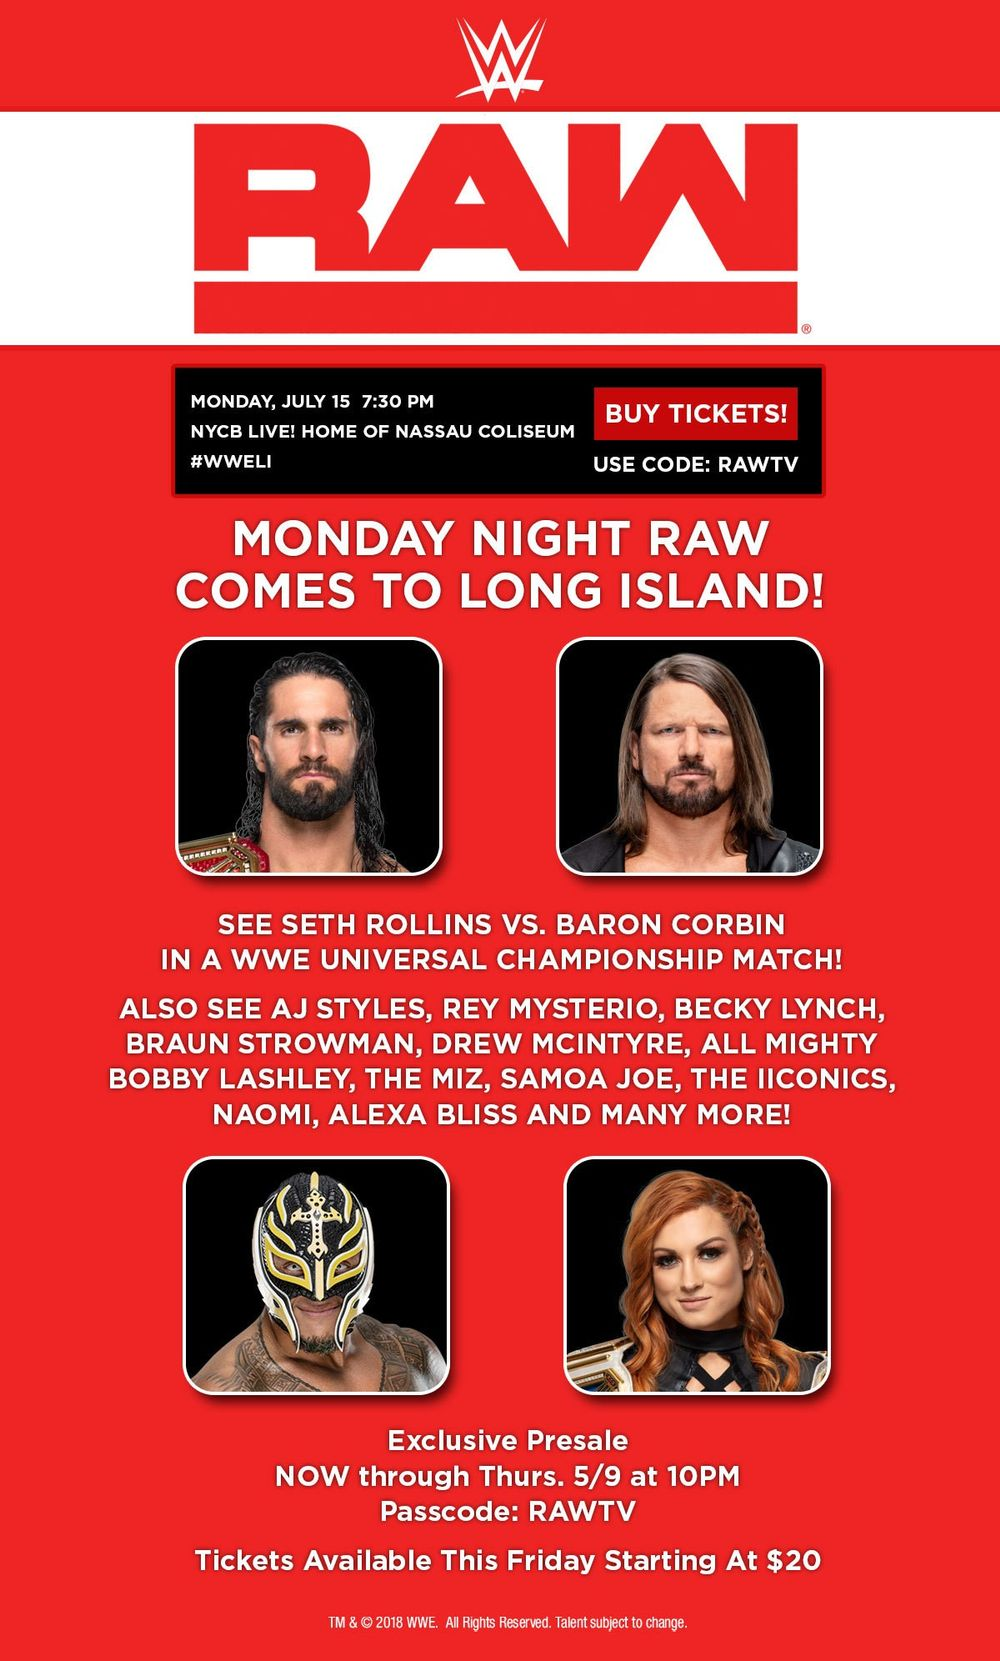 WWE Shop: LONG ISLAND! Here is your presale offer for Monday